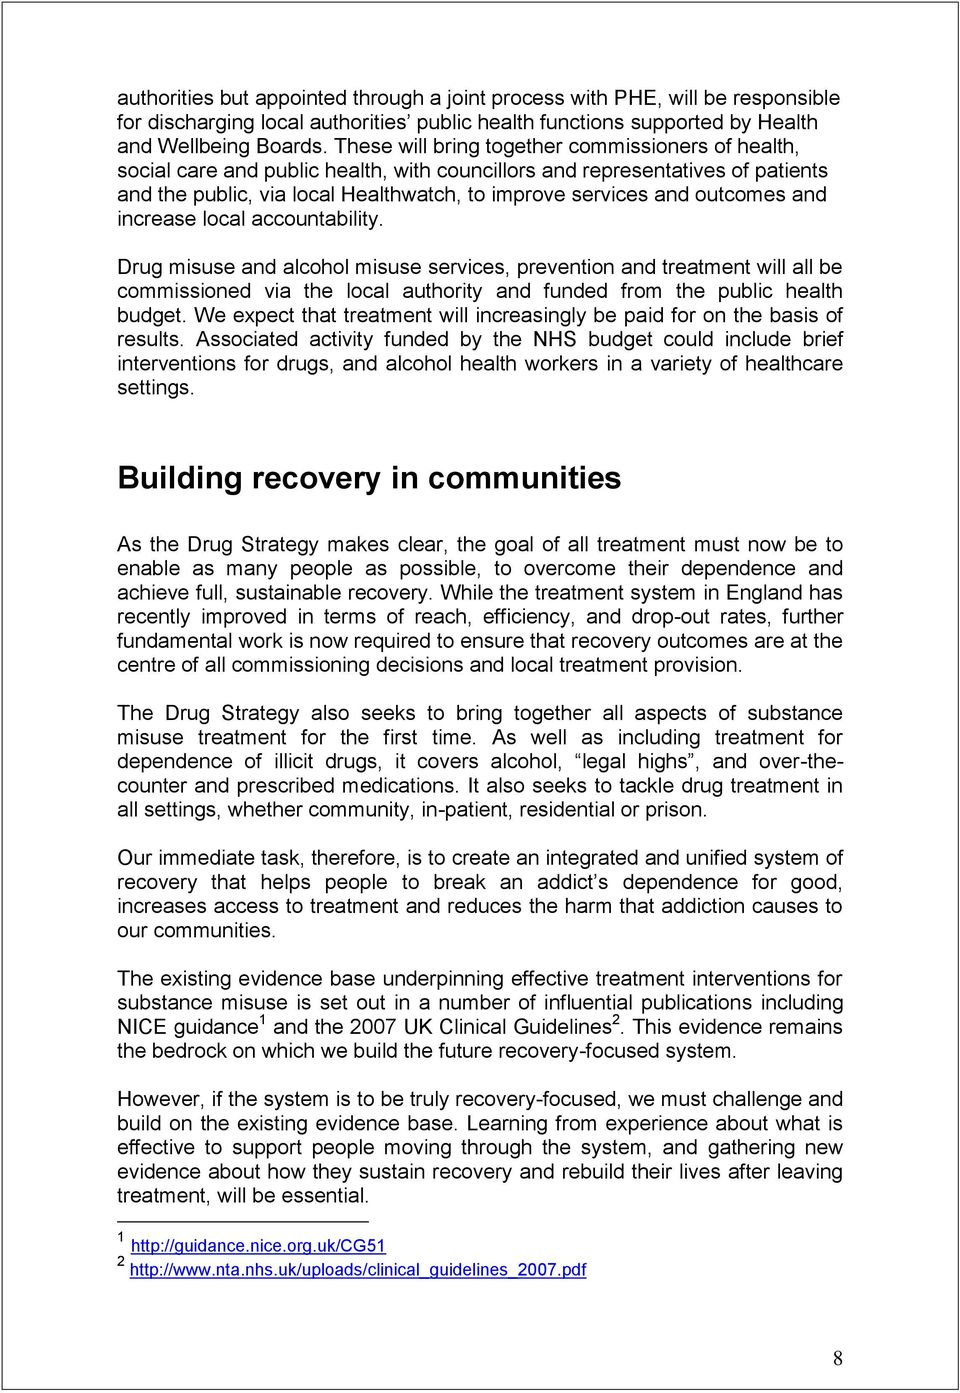 outcomes and increase local accountability. Drug misuse and alcohol misuse services, prevention and treatment will all be commissioned via the local authority and funded from the public health budget.